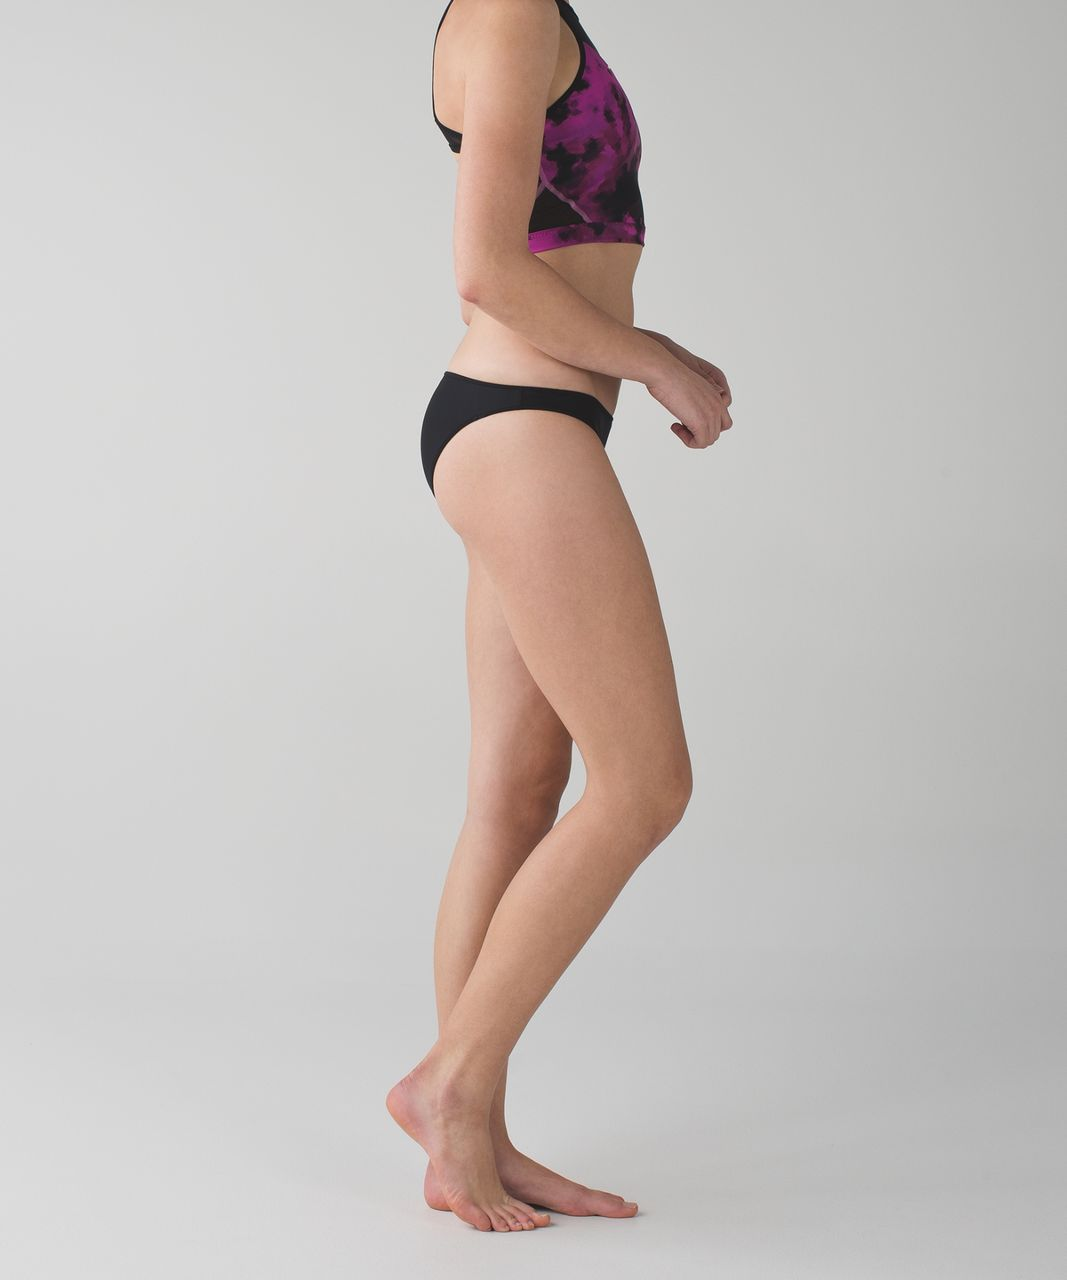 Lululemon Water: Surf To Sand Bikini Bottom - Black / Blooming Pixie Raspberry Black